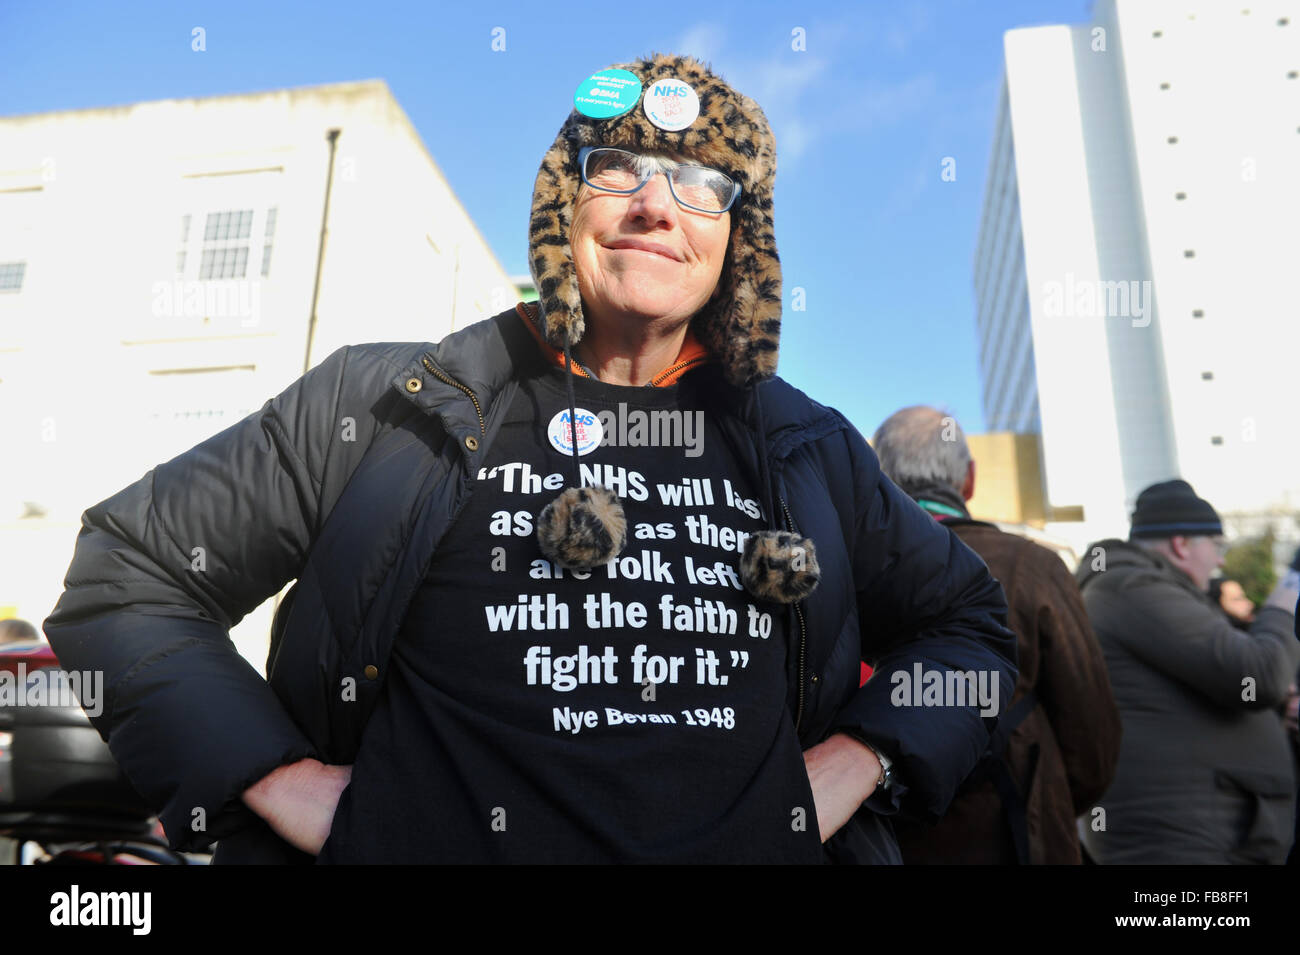 Brighton UK 12th January 2016 - A lady with a Nye Bevan shirt on the picket line as junior doctors  go on strike - Stock Image